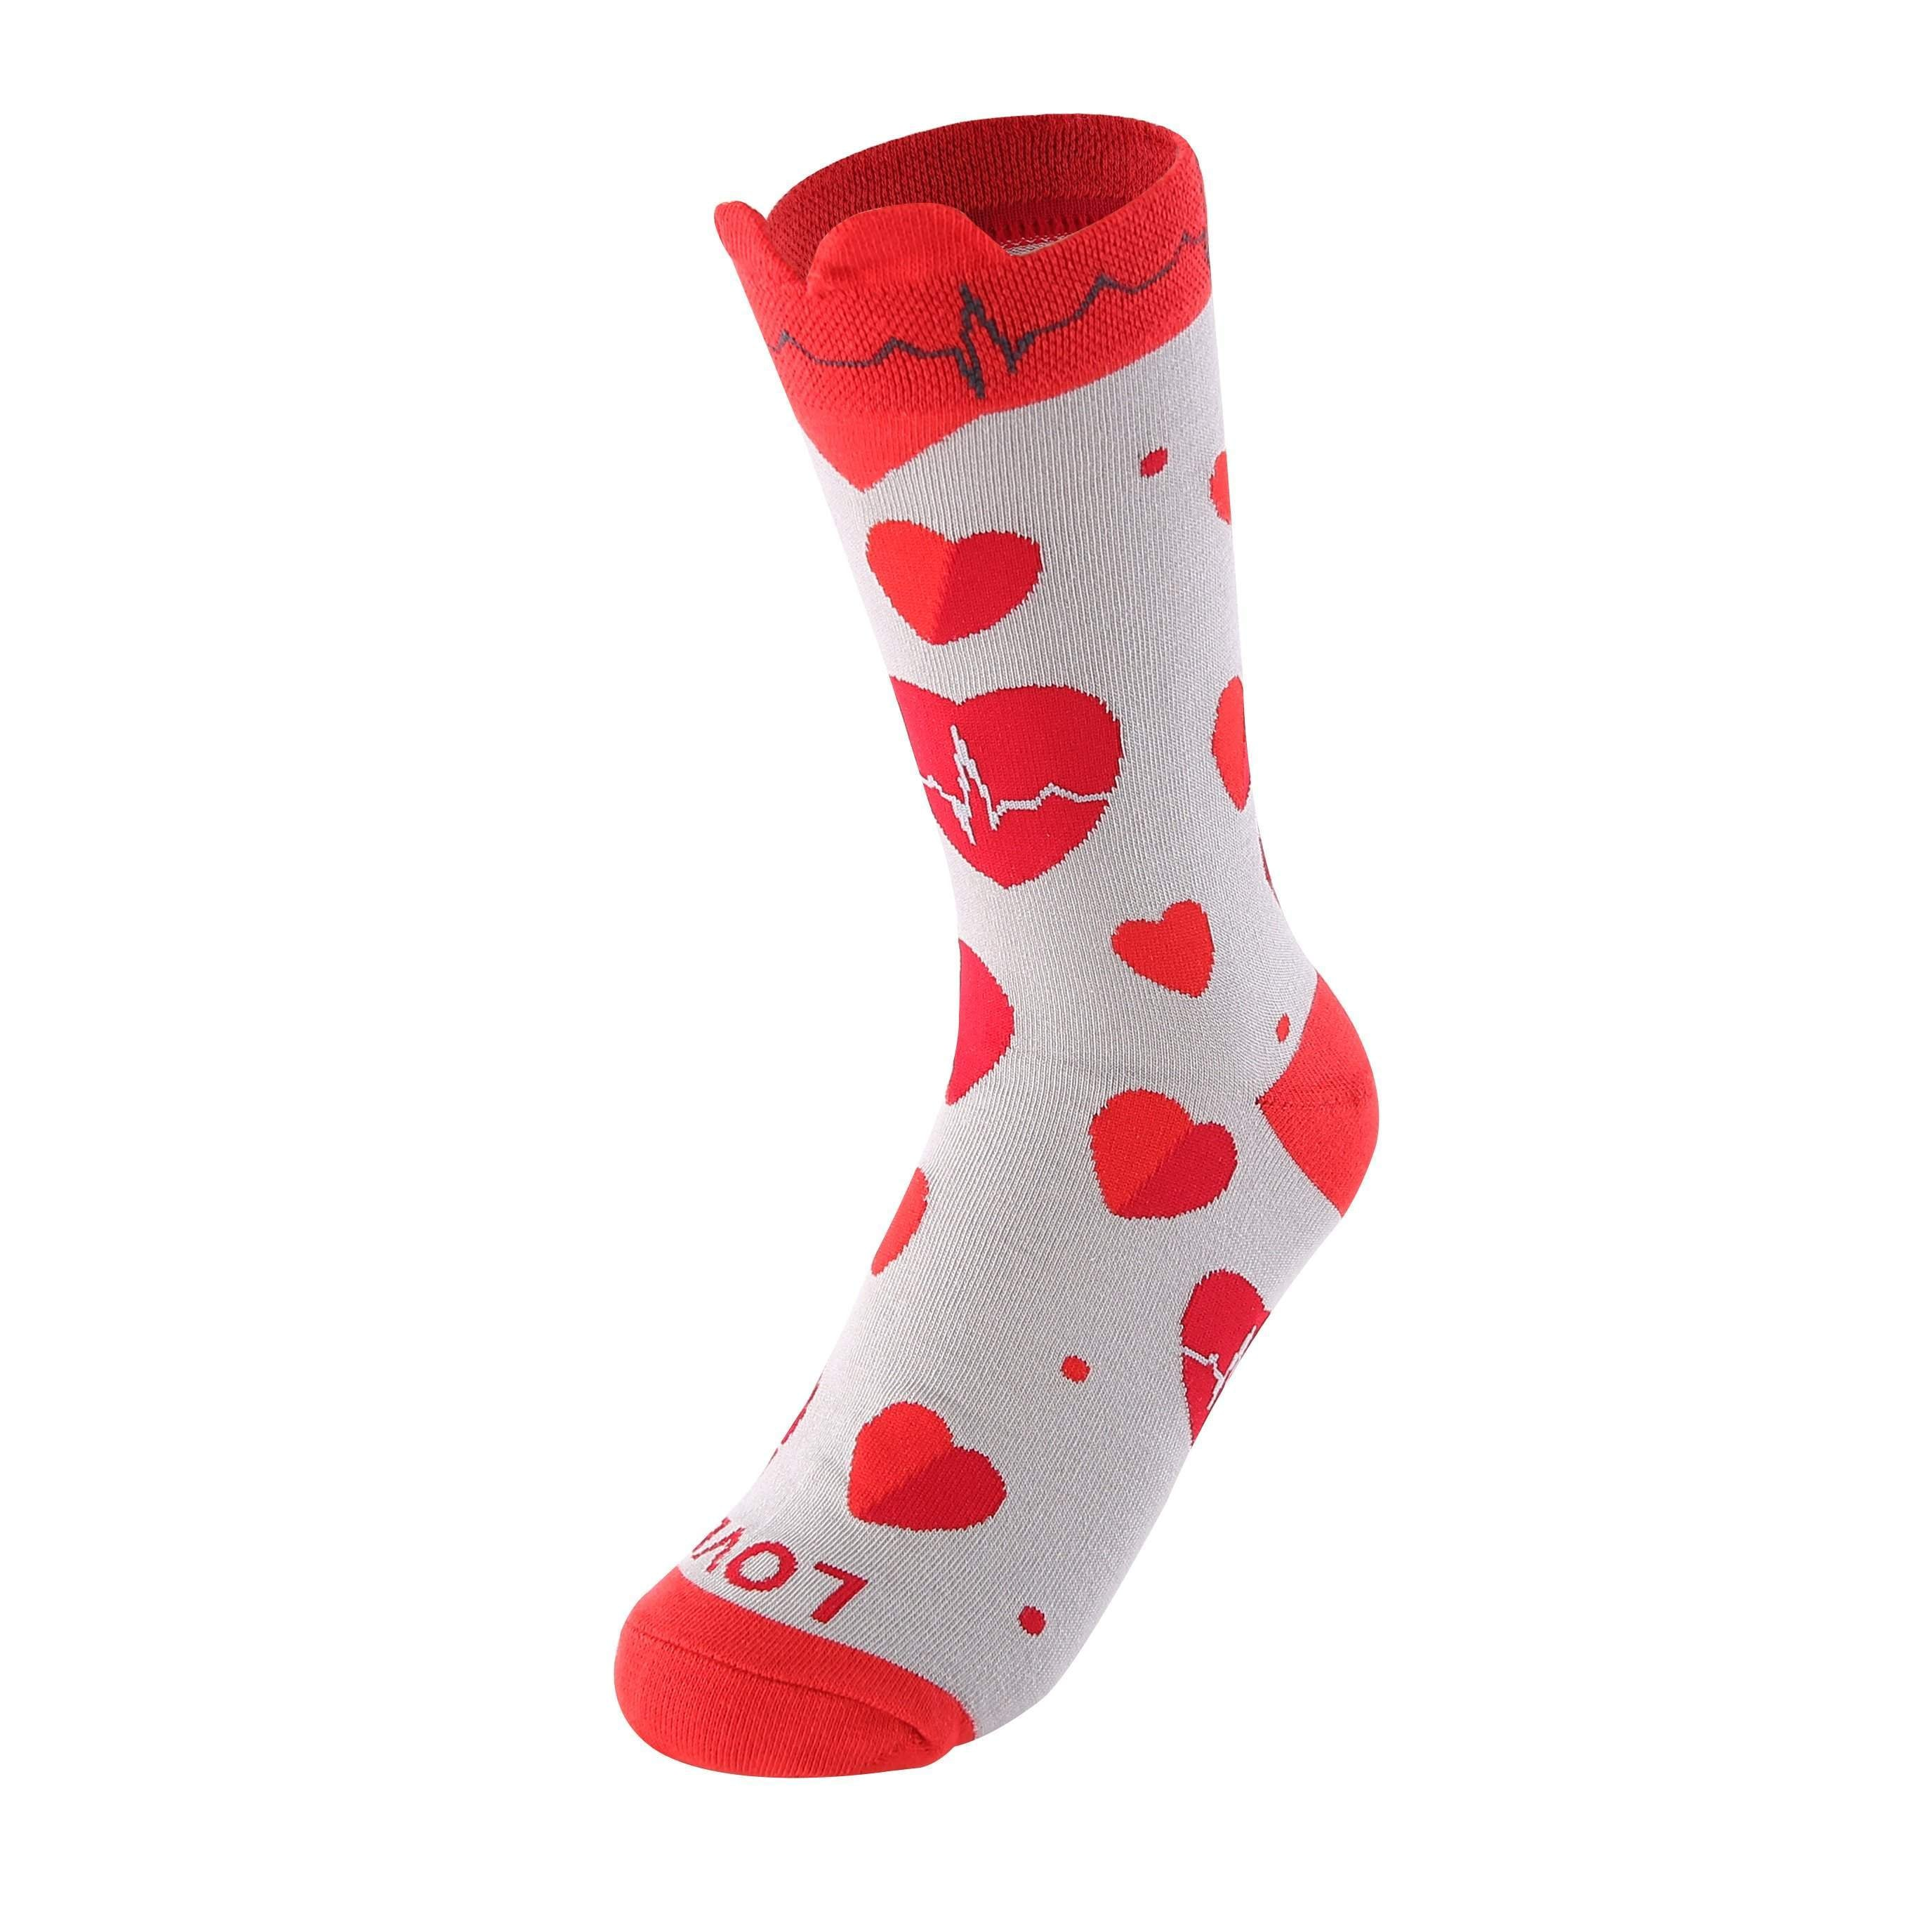 LOVE EKG Heart Women's Crew Socks-UPKIWI